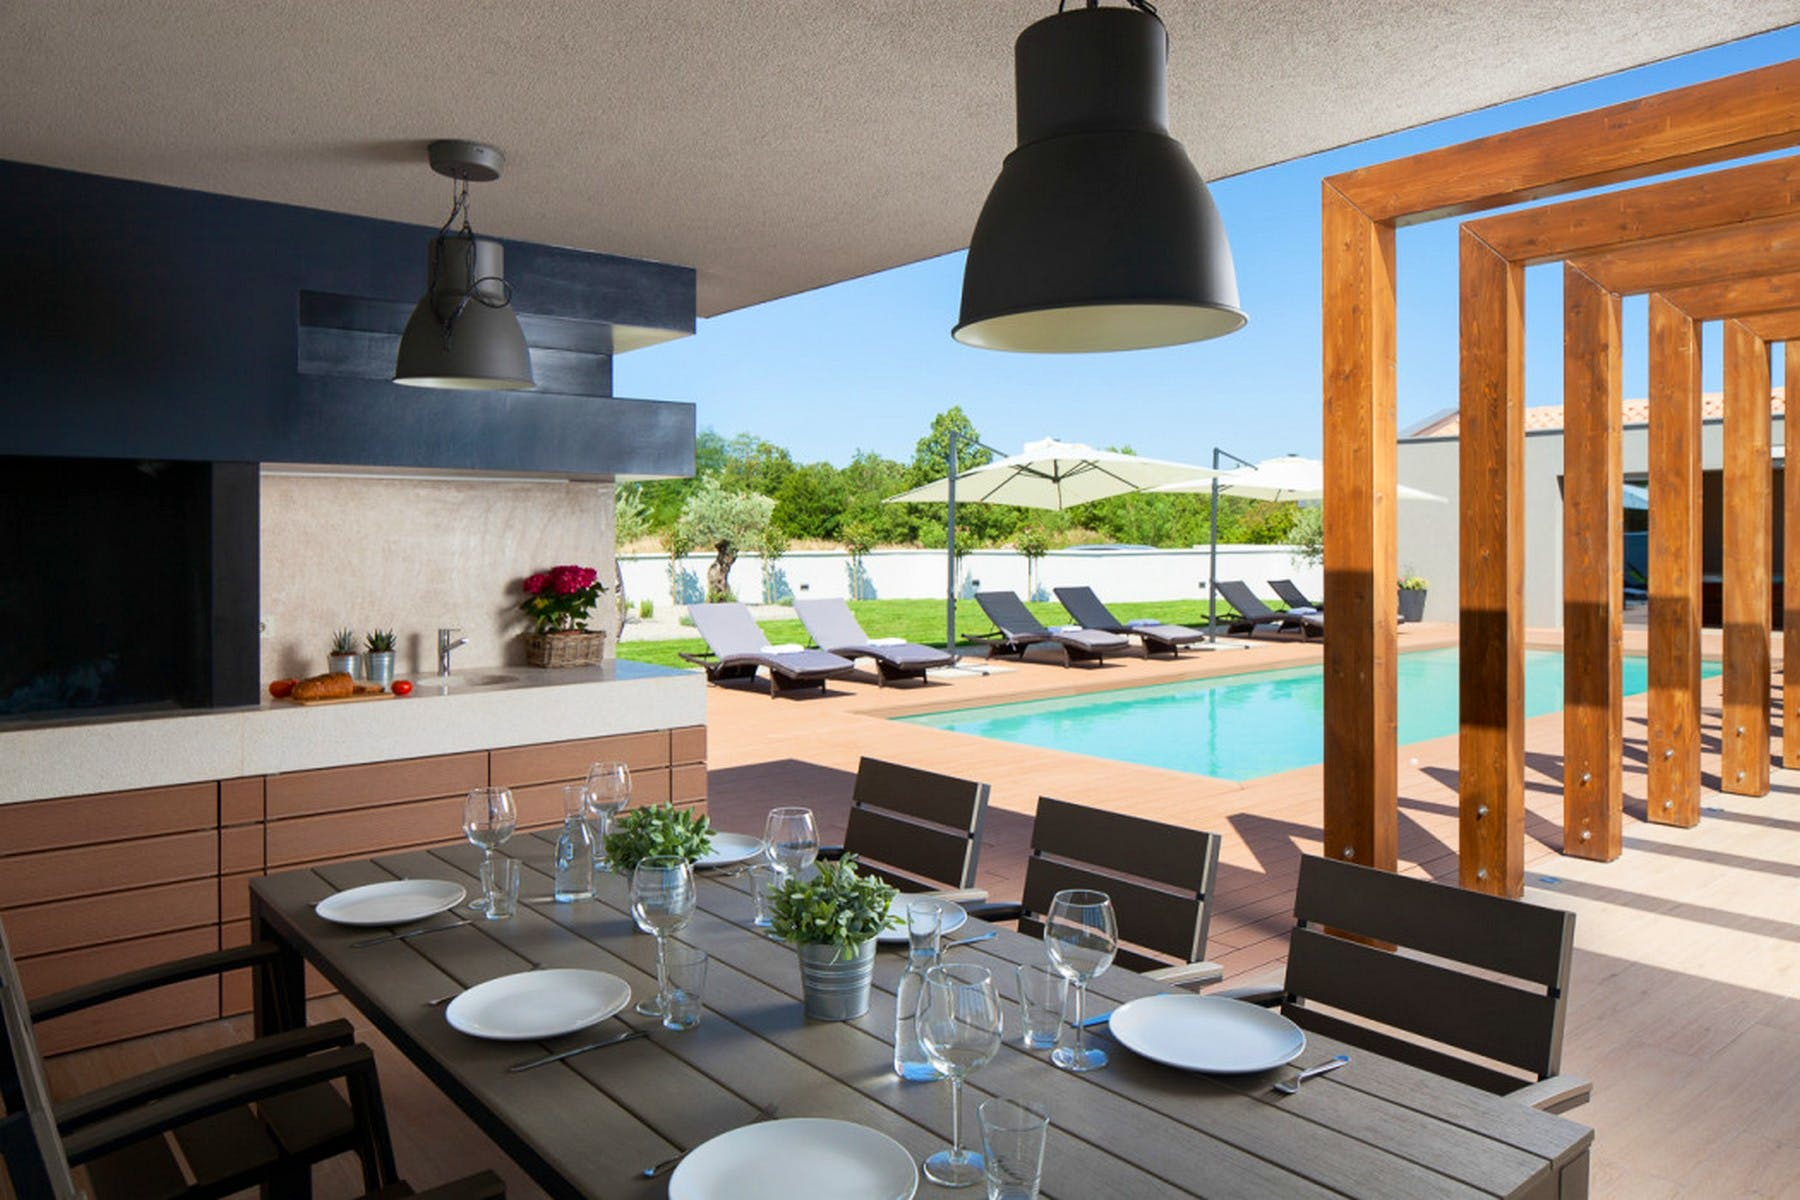 Summer kitchen and outside dining area with view of the pool